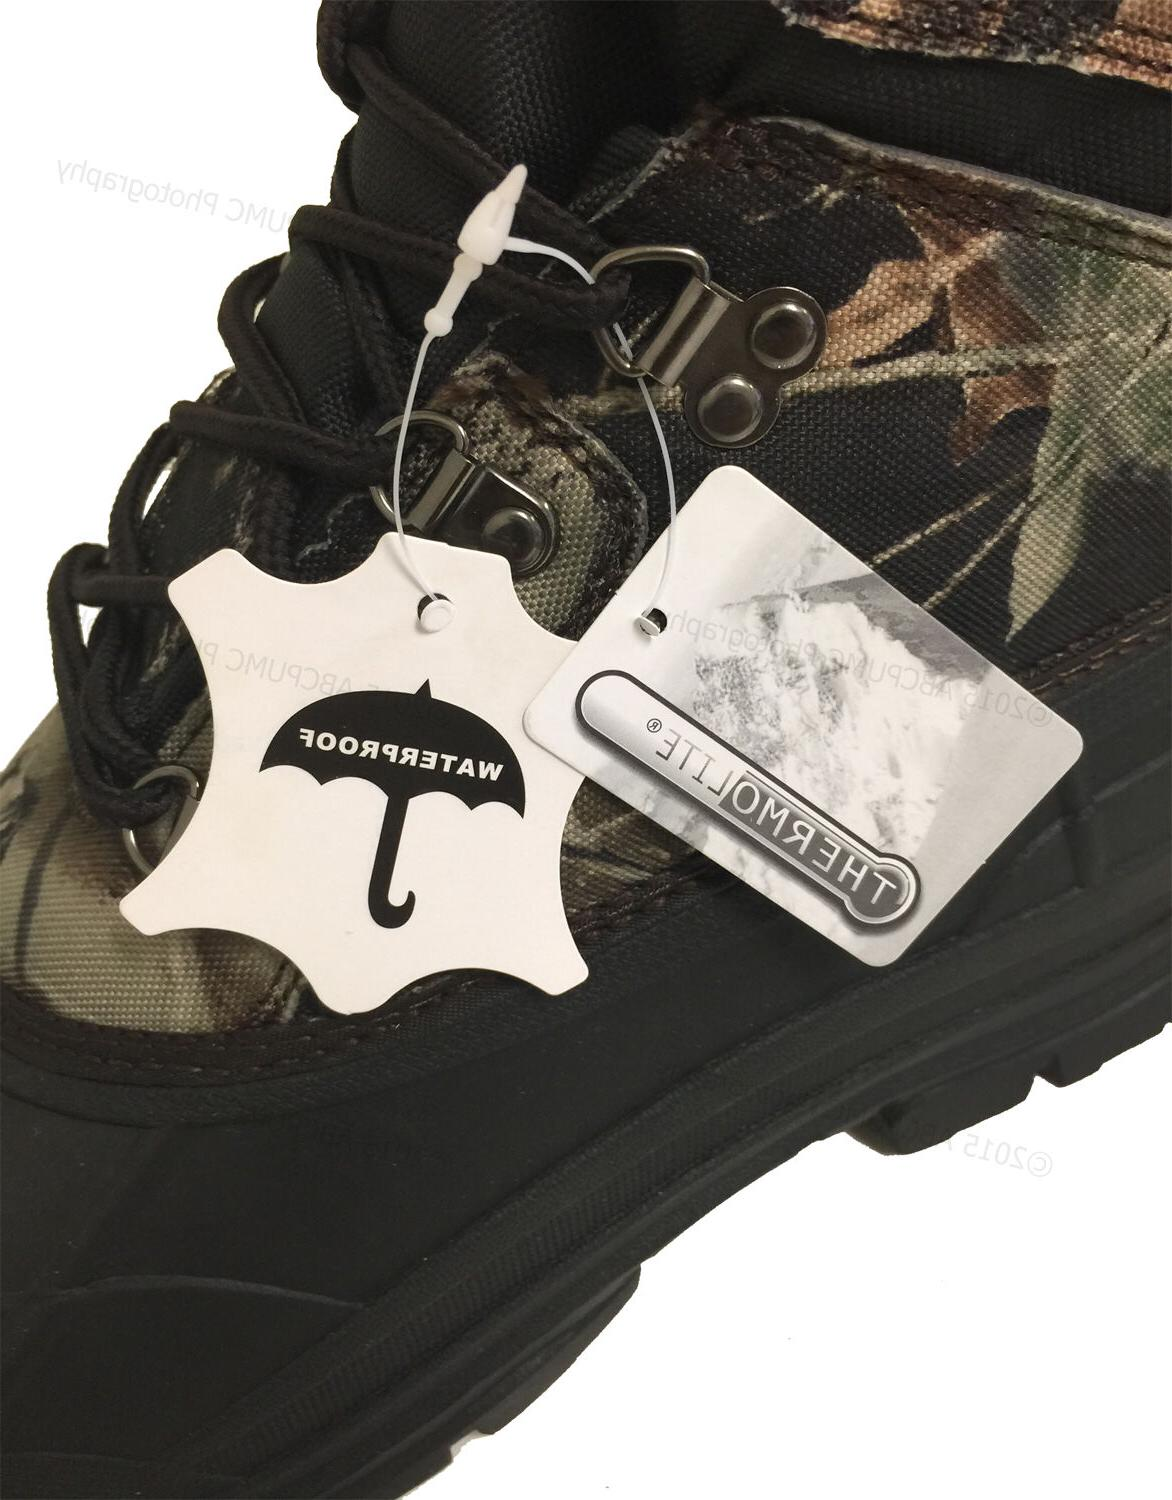 Mens Boots Camouflage Waterproof Insulated Hunting Thermolite Shoes